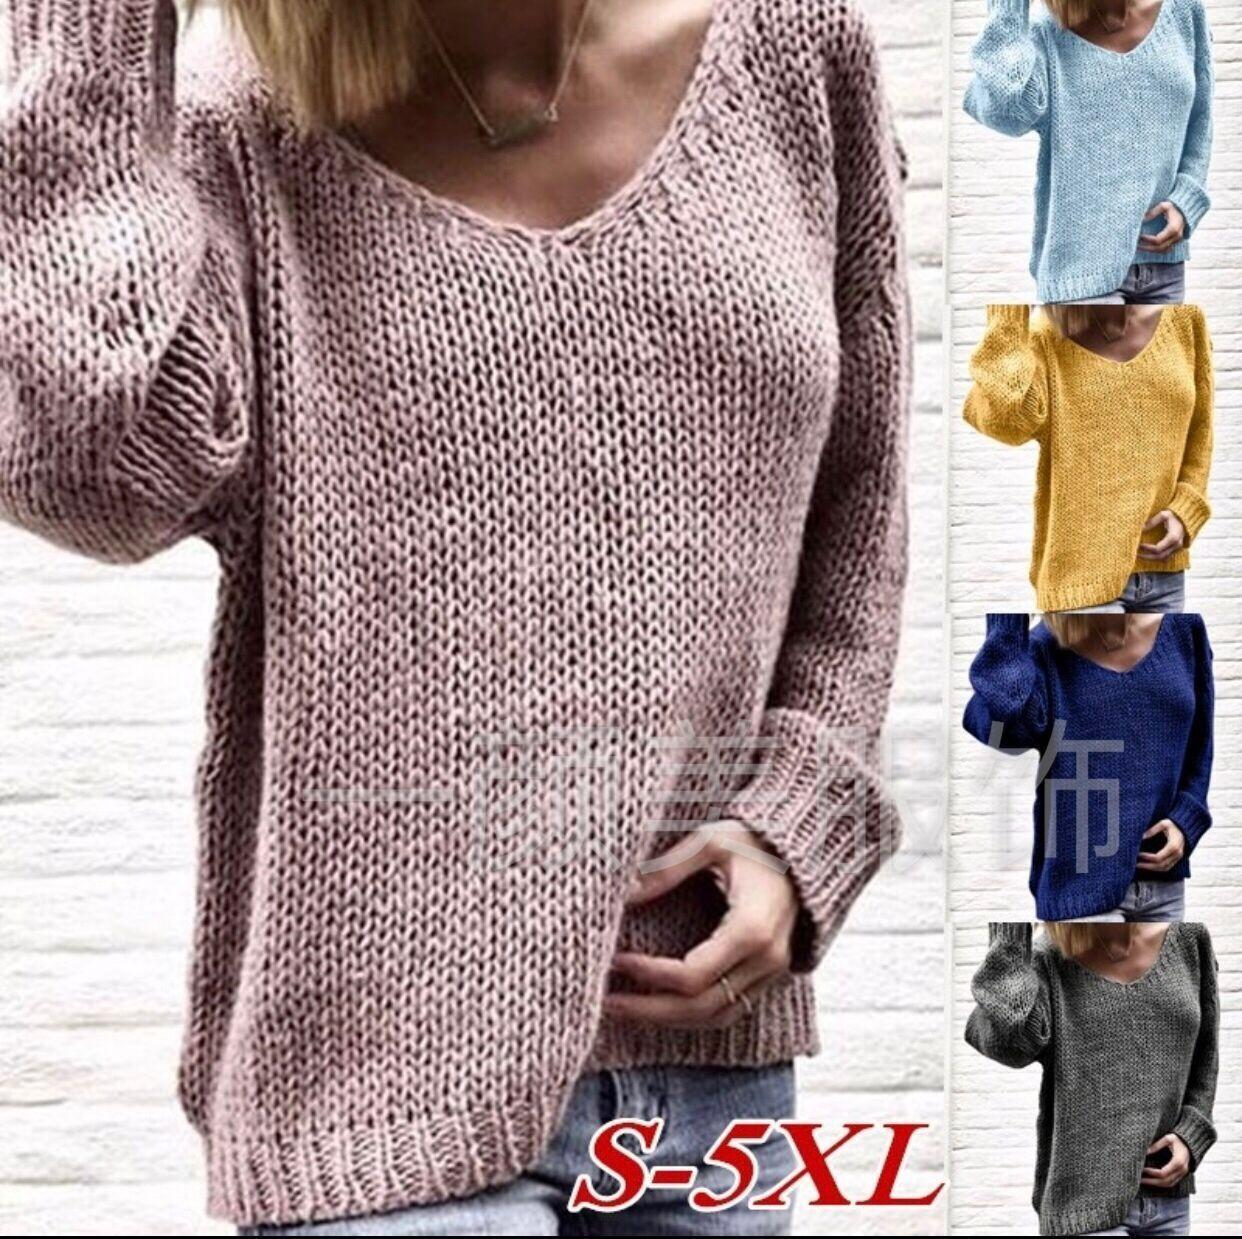 d8f0fbf20413 2019 European And American New V-neck Loose Women s Sweater Spot ...